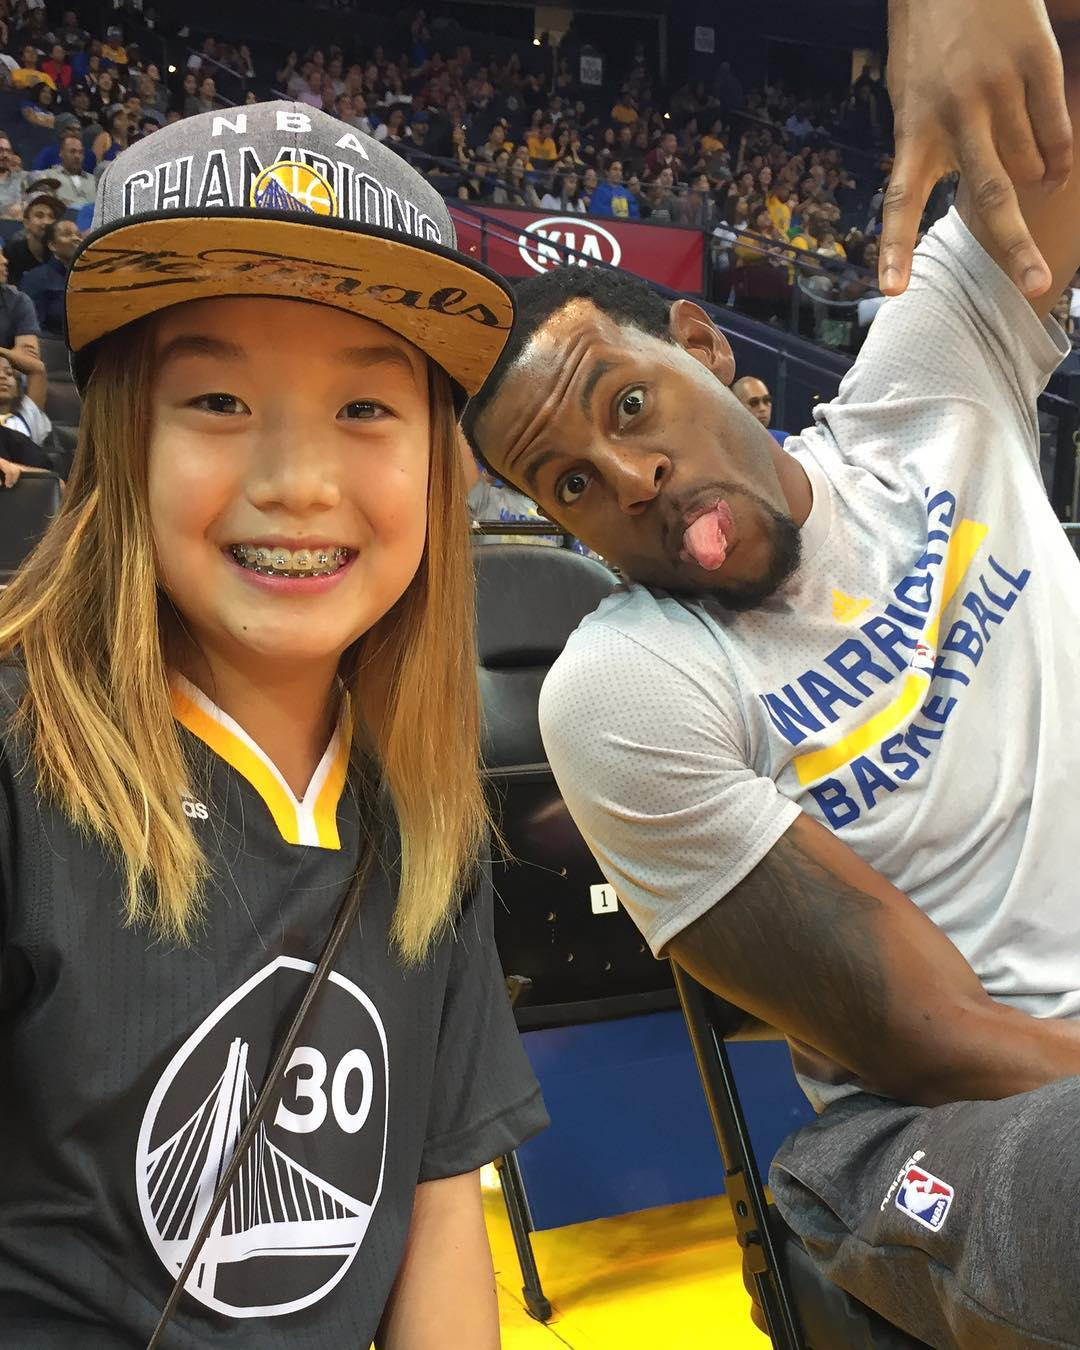 <div class='meta'><div class='origin-logo' data-origin='none'></div><span class='caption-text' data-credit='Photo submitted to KGO-TV by @Frank49erkim/Instagram'>Warriors fans show their spirit during the 2017-2018 season. Share your pictures using #DubsOn7 and you may see them online or on TV!</span></div>